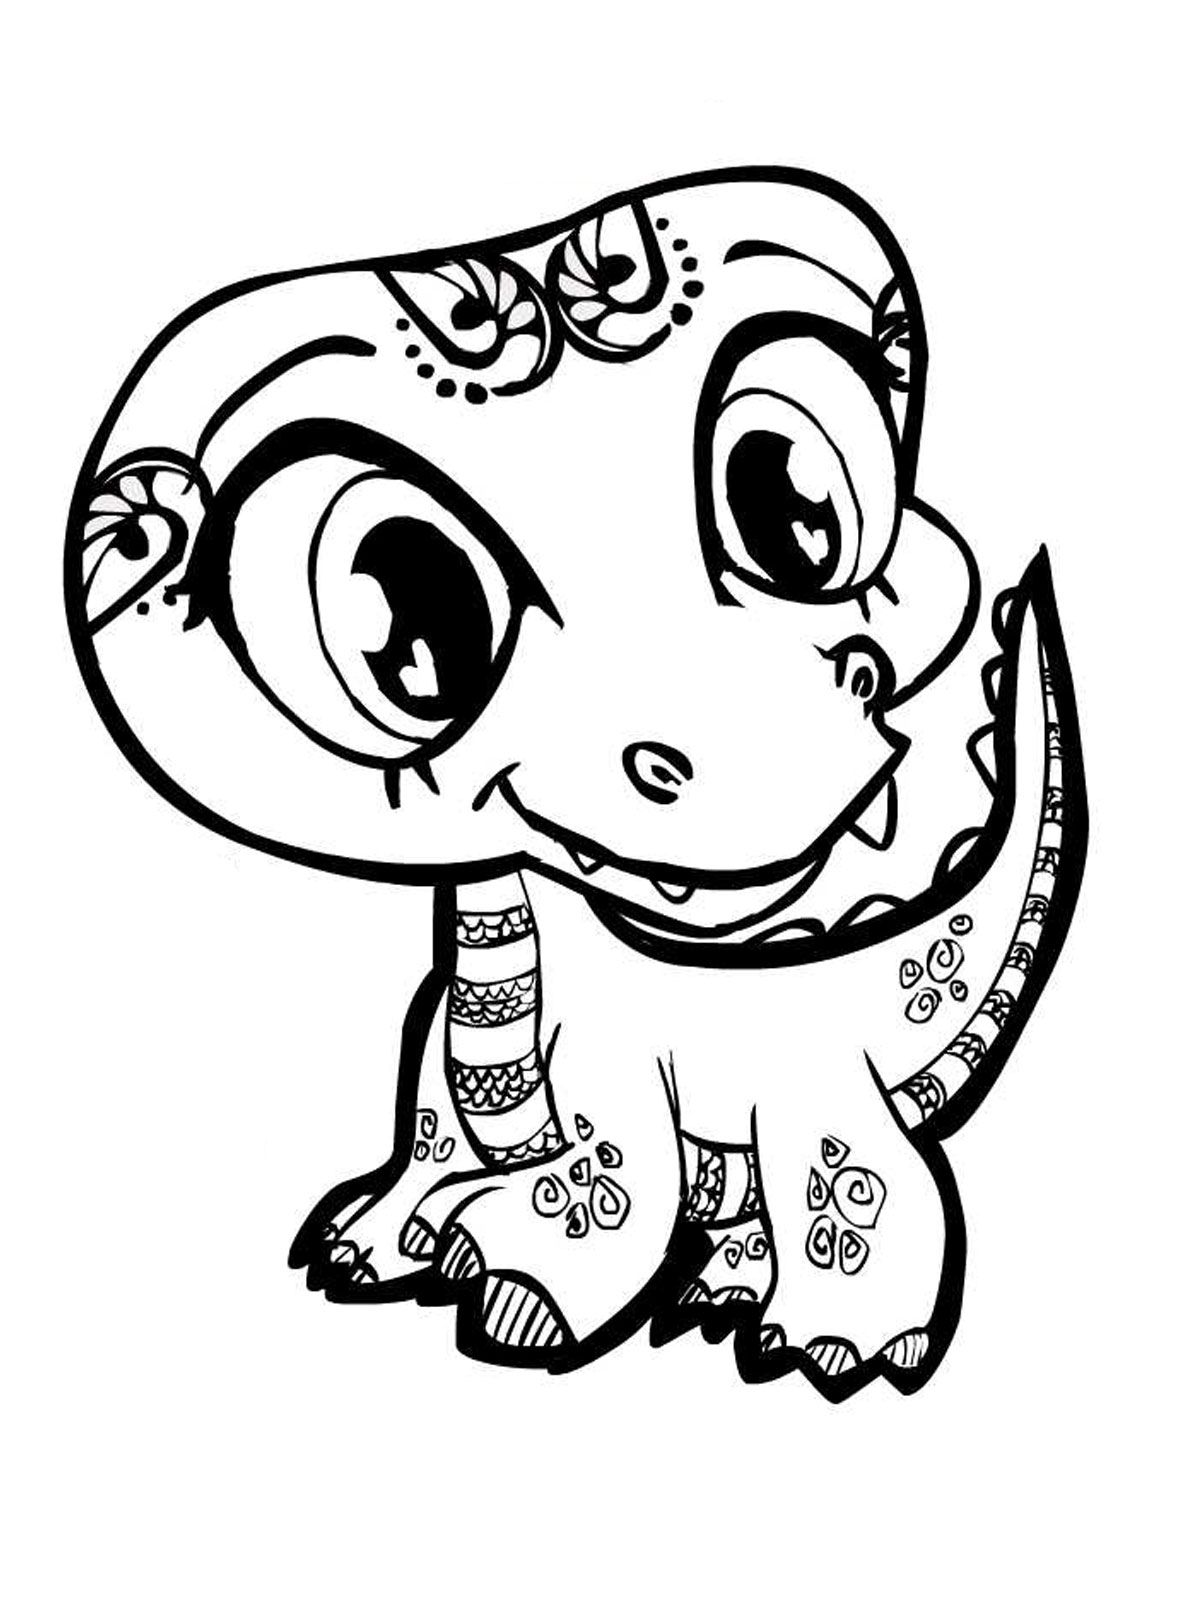 coloring pages cute animals 25 cute baby animal coloring pages ideas we need fun cute coloring animals pages